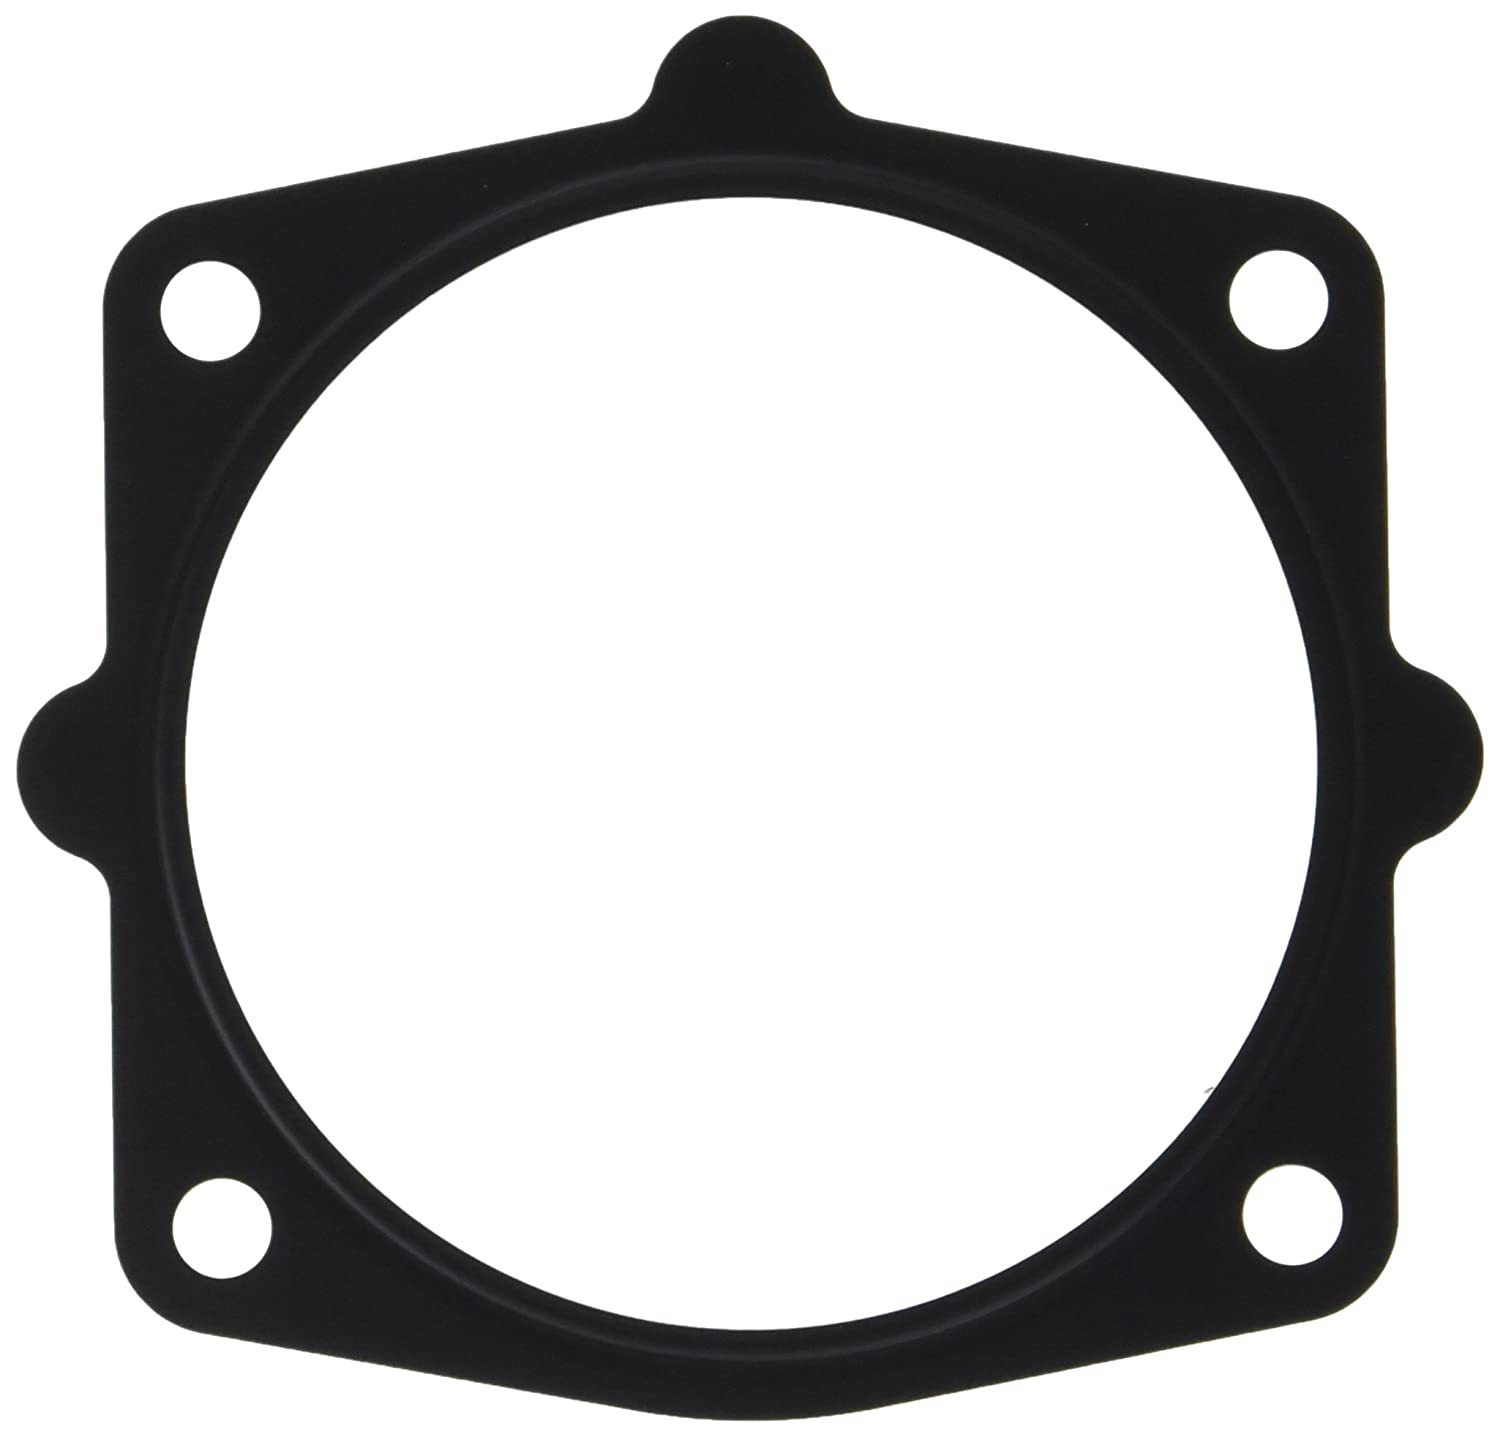 MAHLE Original G31882 Fuel Injection Throttle Body Mounting Gasket vgG31882.10040